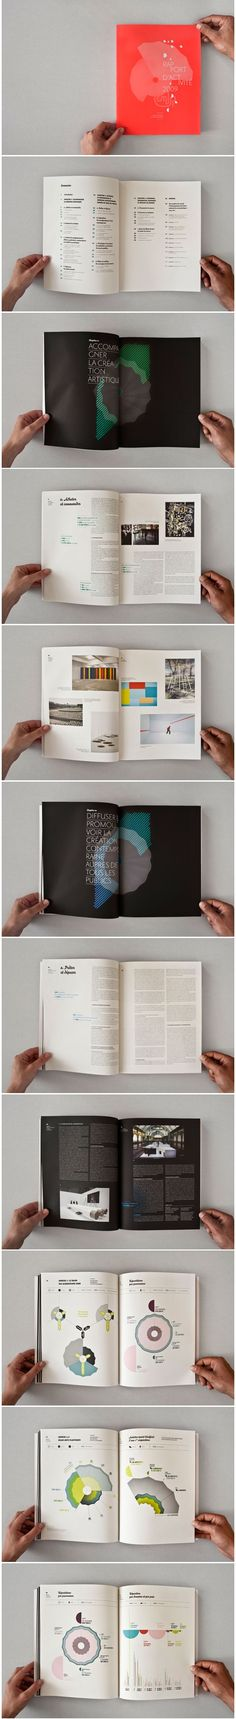 Caroline Fabes, design of the 2009 annual report for the National Art Center (Centre national des arts plastiques). In collaboration with the Graphiquants. #infographics